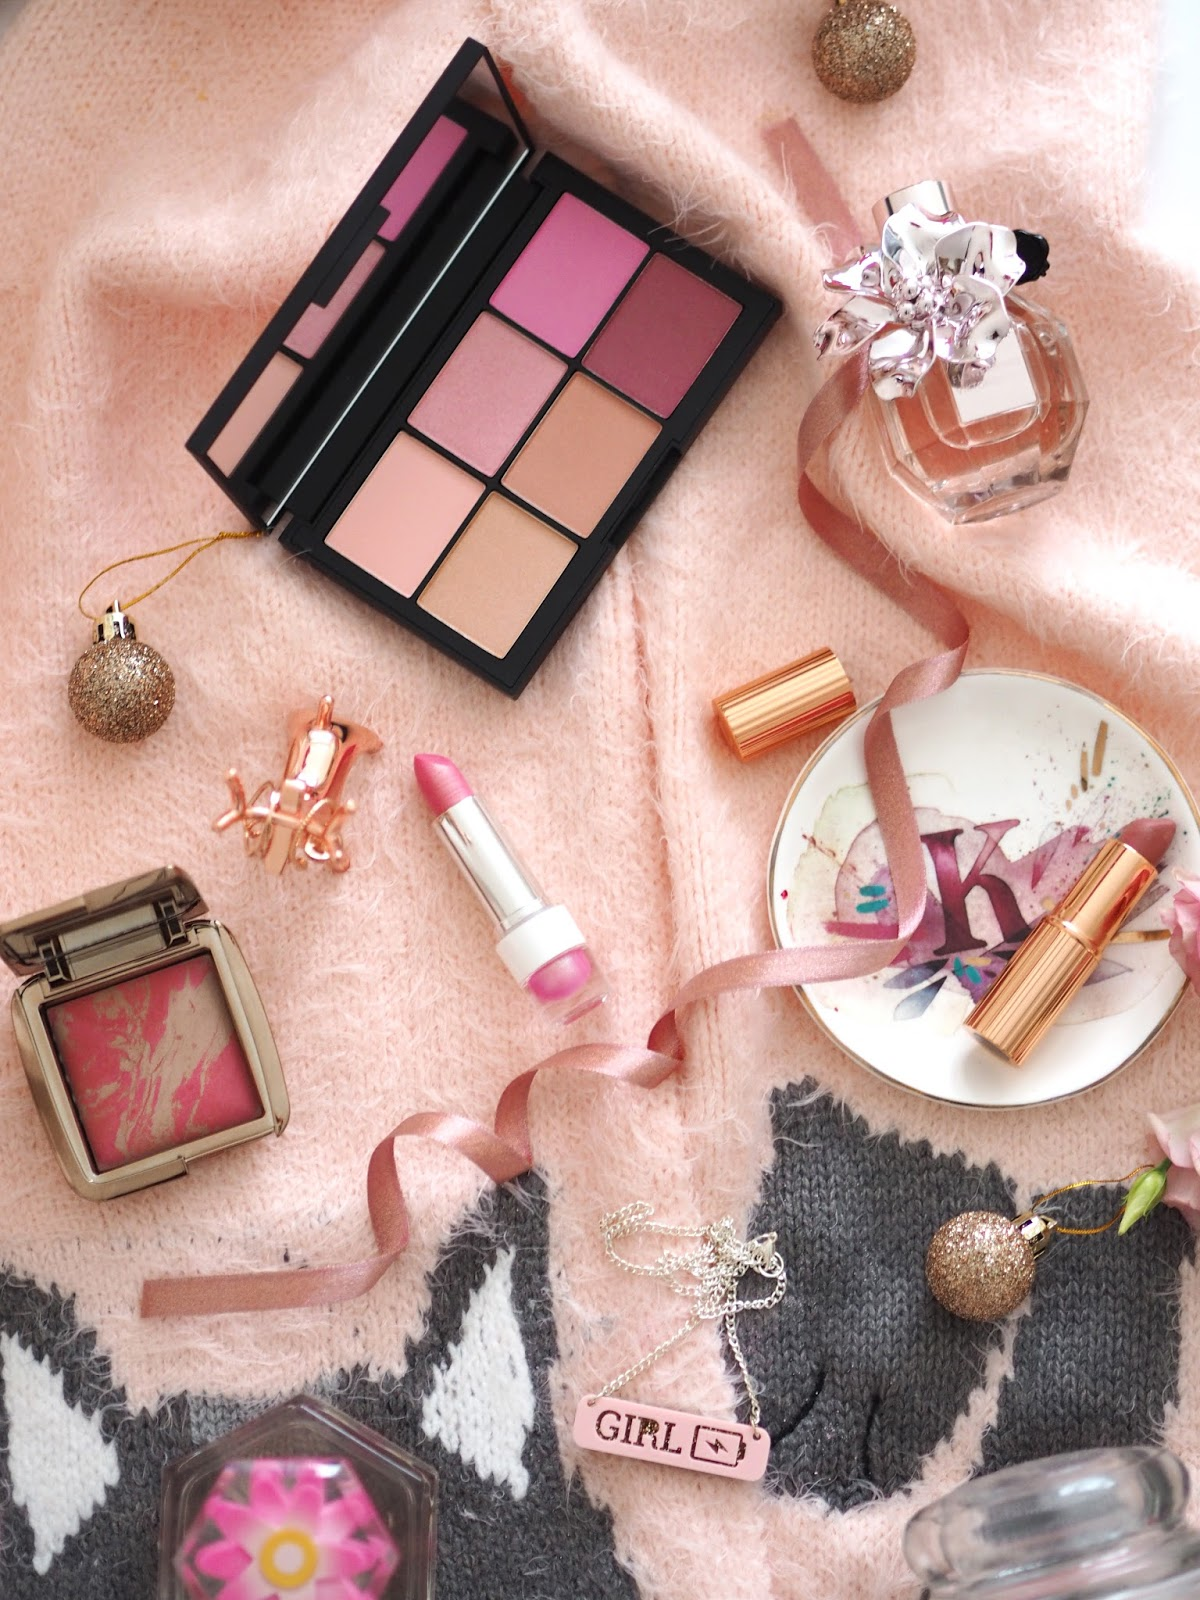 The Pink Gift Guide, Katie Kirk Loves, UK Blogger, Beauty Blogger, Christmas, Christmas Gifts, Gift Guide, Gift Ideas, Beauty Gifts, lifestyle, Luxury Gifts, Pink Gifts, Pink Make Up, Pink Accessories, Pink Lover, Anthropologie, Yumi Clothing, Cat Scarf, Accessorize, Charlotte Tilbury, Viktor & Rolf Flower Bomb, Etst Shop, Cult Beauty, Debenhams Beauty, Hourglass Cosmetics, Becca Cosmetics, Lush Cosmetics, Snow Fairy, Bluebelle & Co, House of Disaster, Disaster Designs, Spectrum Collections, Oasis Fashion, Rose Gold, Nails Inc, Incredible Cosmetics, Yankee Candle, Snowflake Cookie